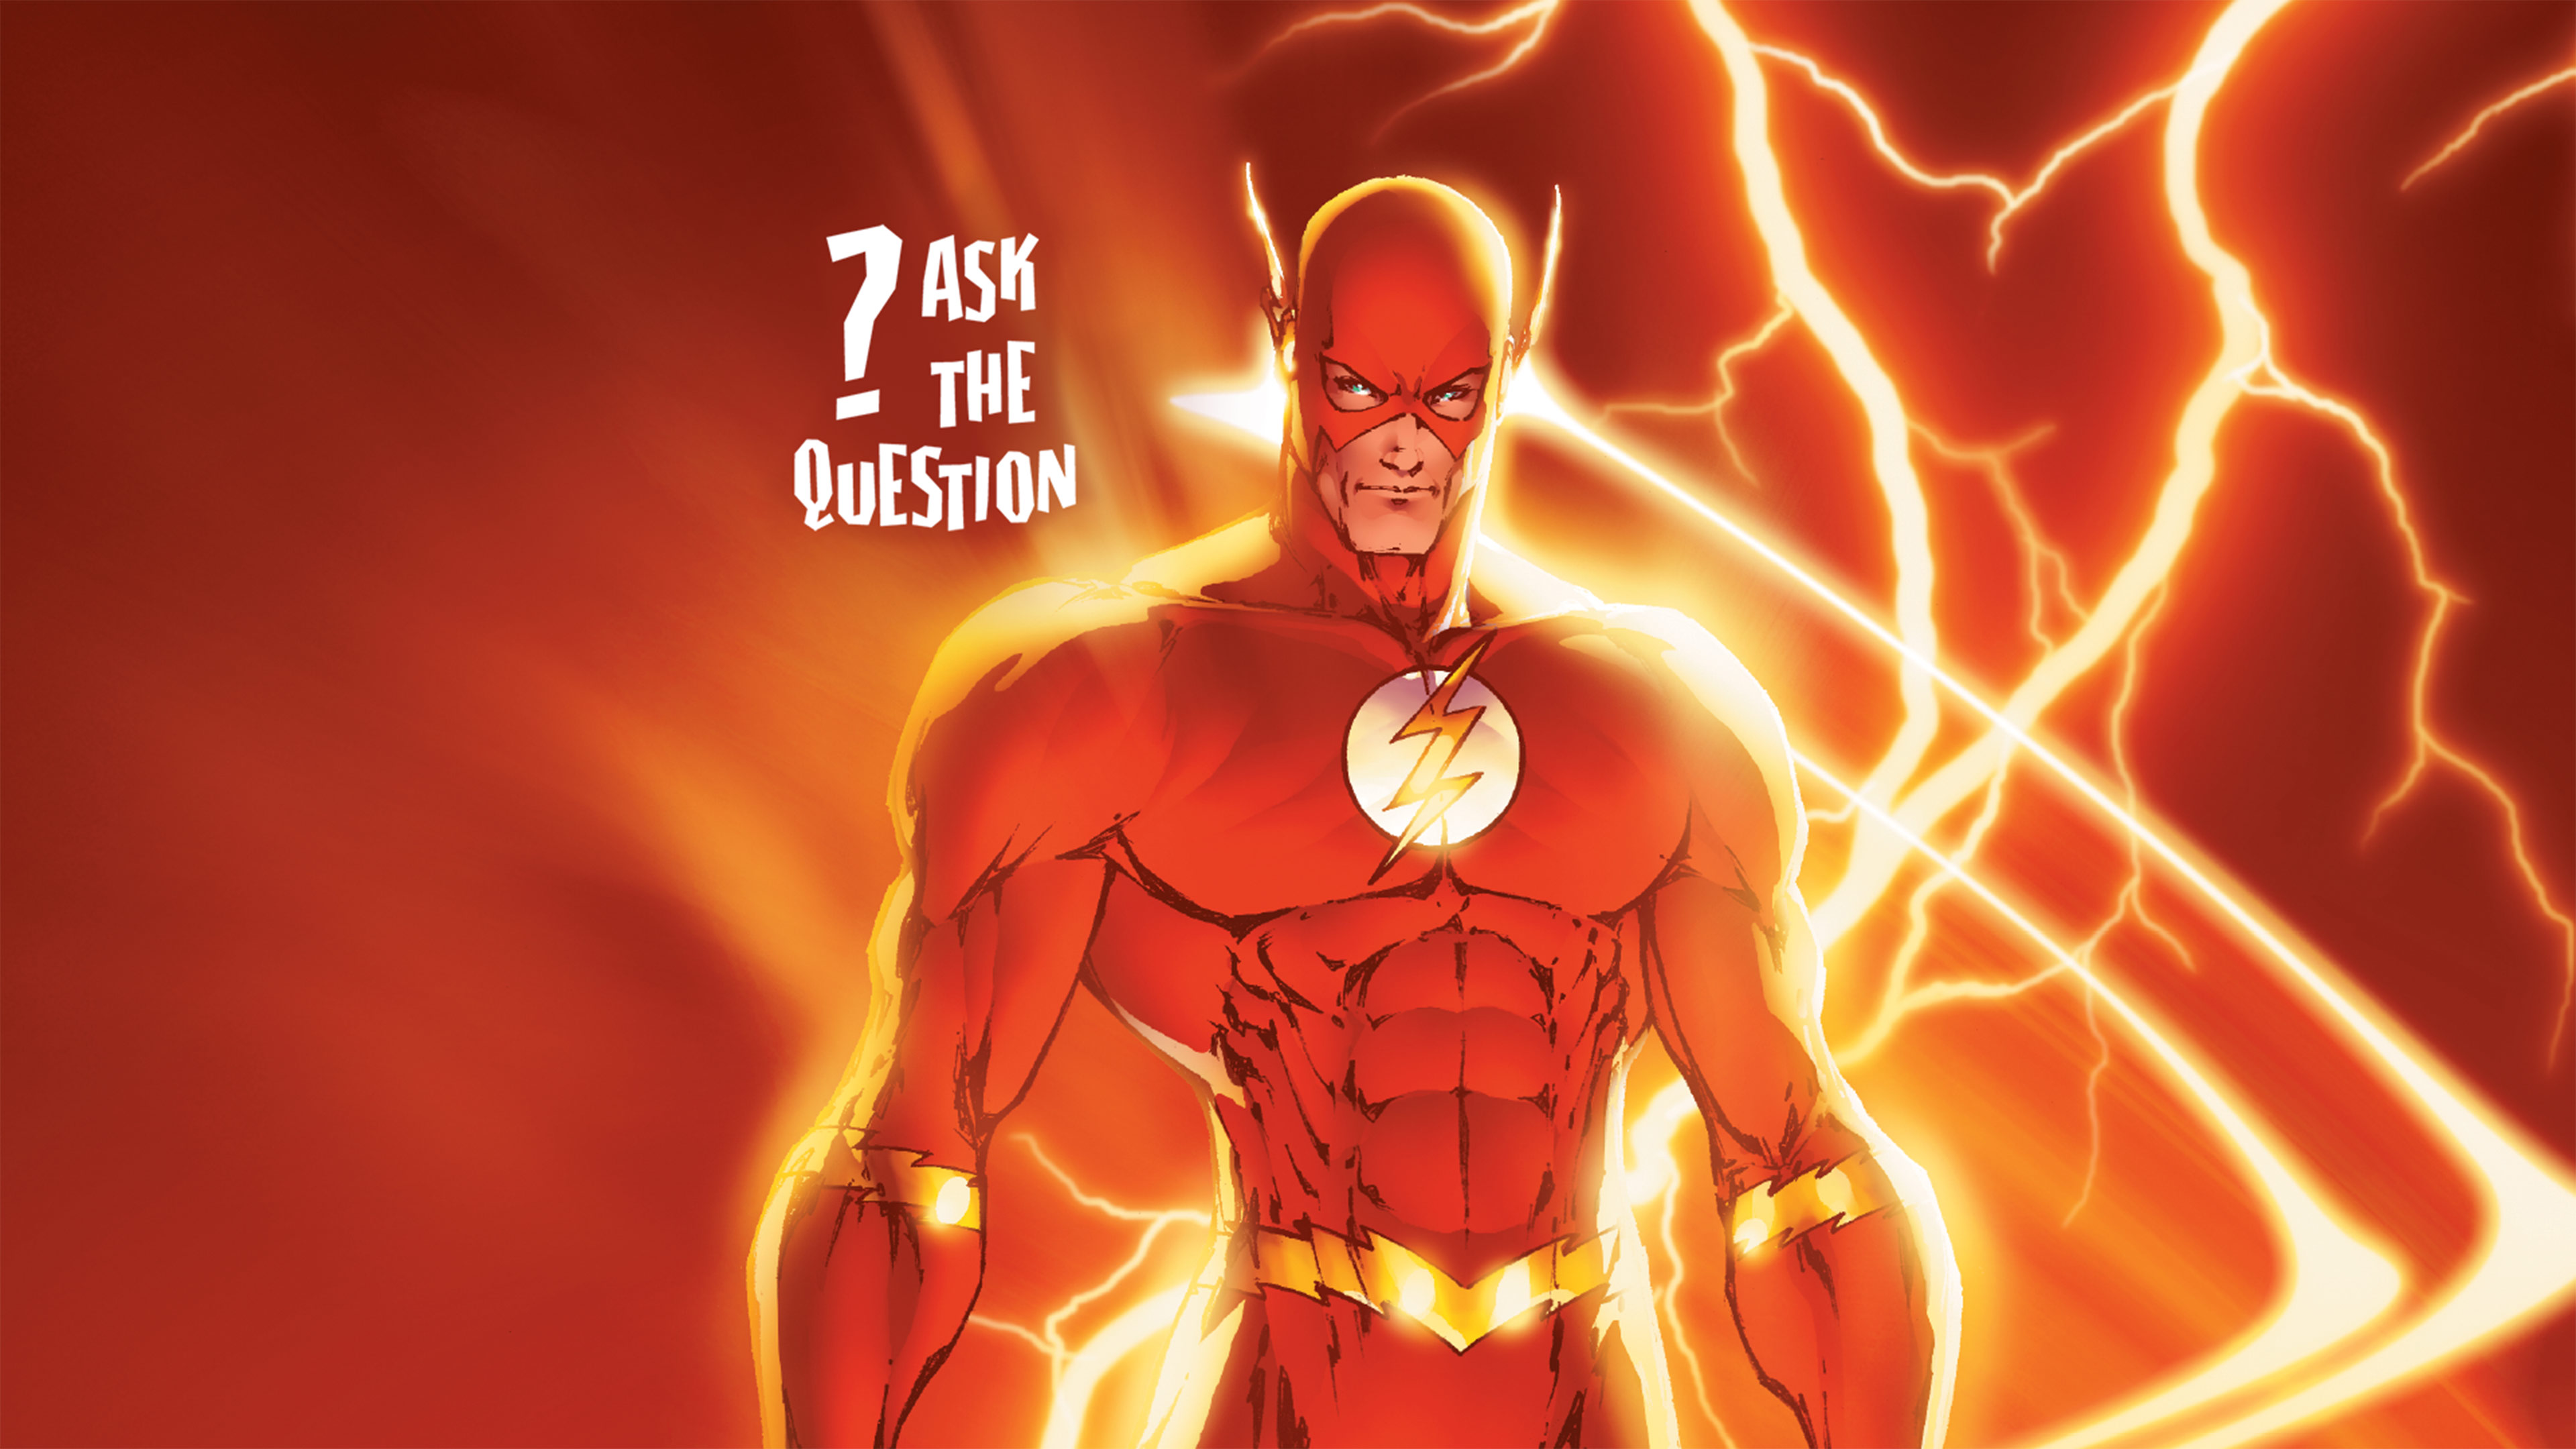 atq_theflash_news_hero-c_v1_200326.jpg